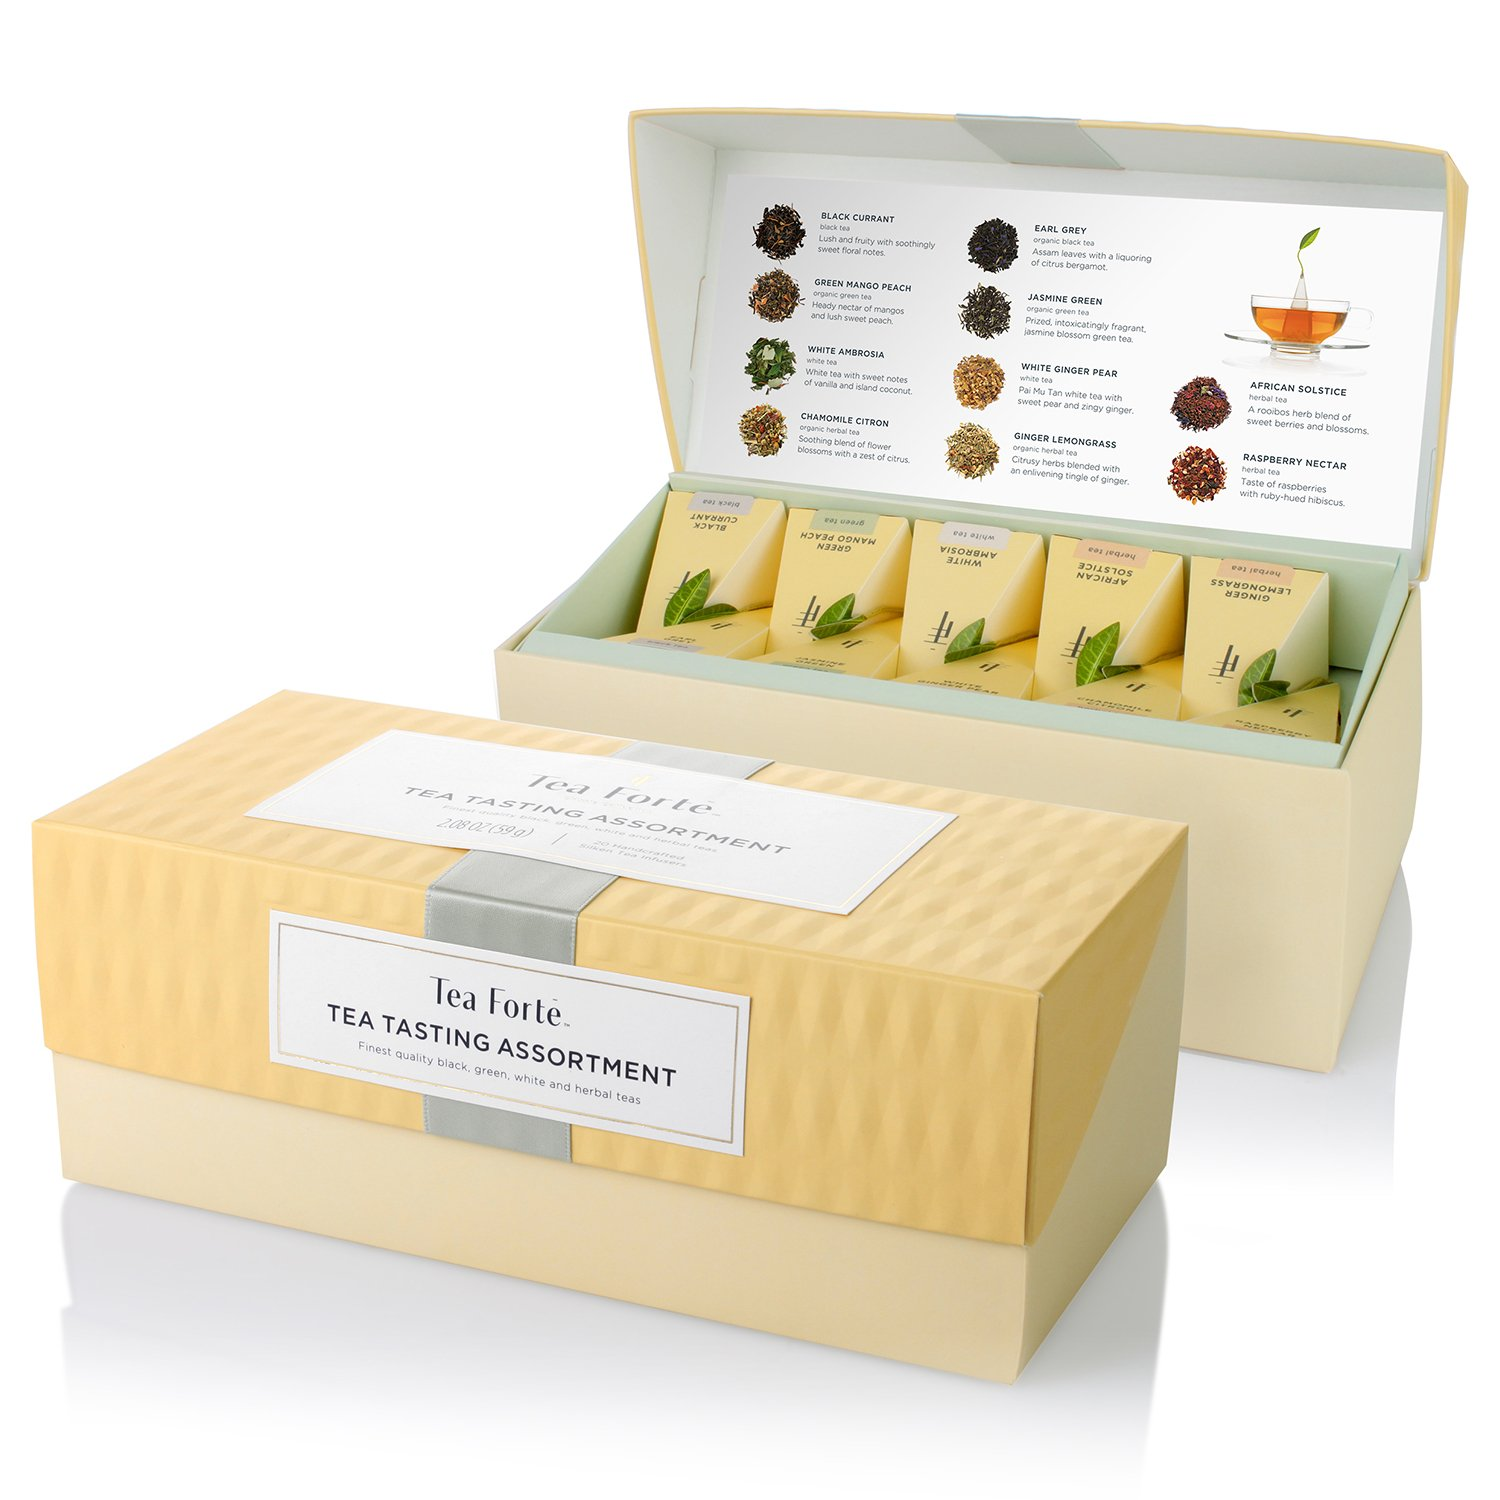 Tea Forte Tea Tasting Assortment Presentation Box Tea Sampler, Assorted Variety Tea Box, 20 Handcrafted Pyramid Tea Infuser Bags – Black Tea, White Tea, Green Tea, Herbal Tea